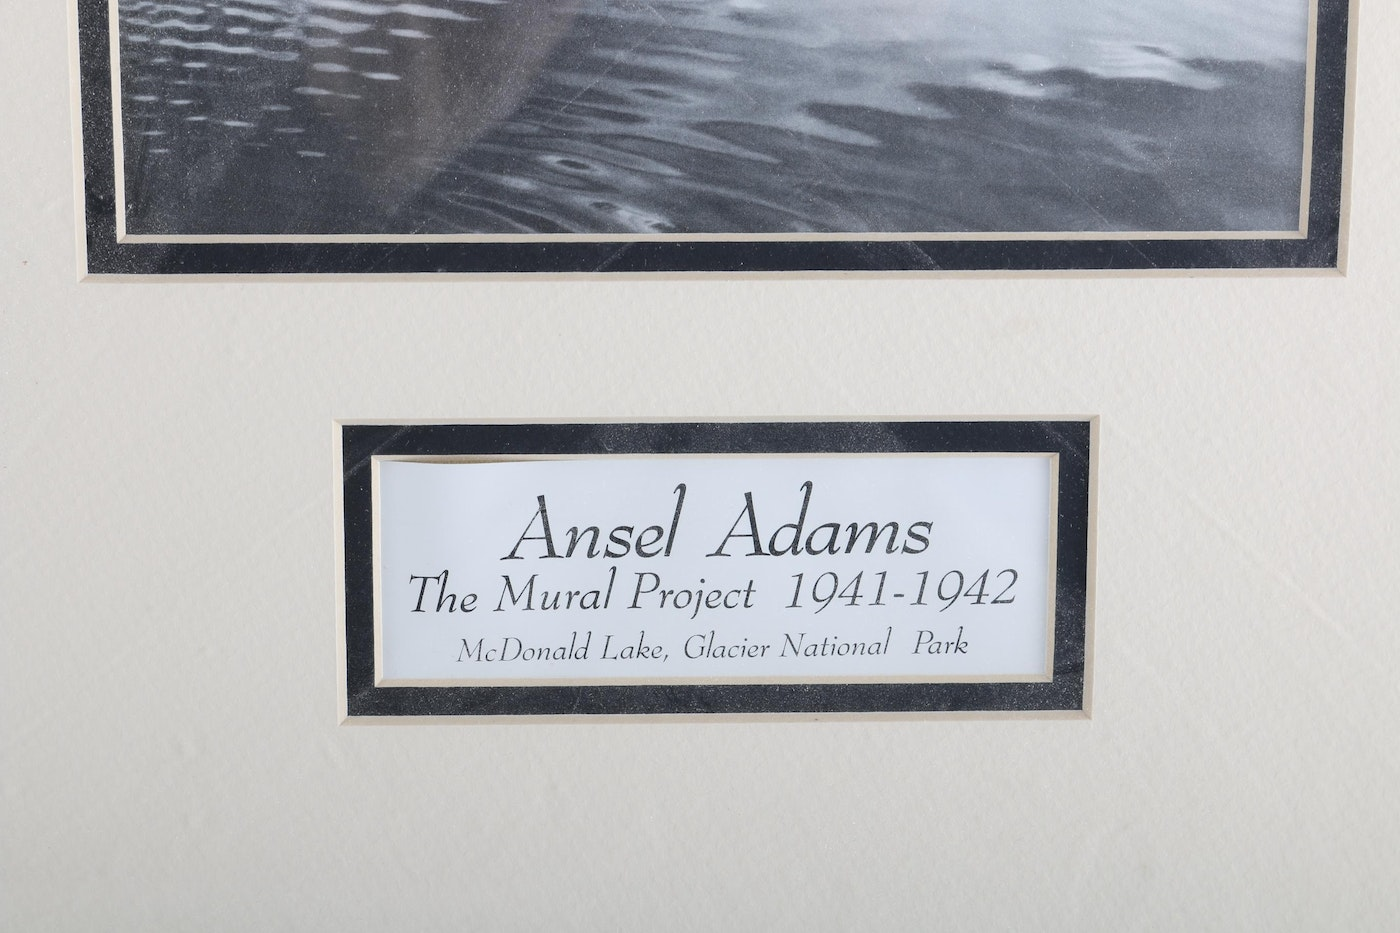 After ansel adams offset lithograph mcdonald lake for Ansel adams mural project 1941 to 1942